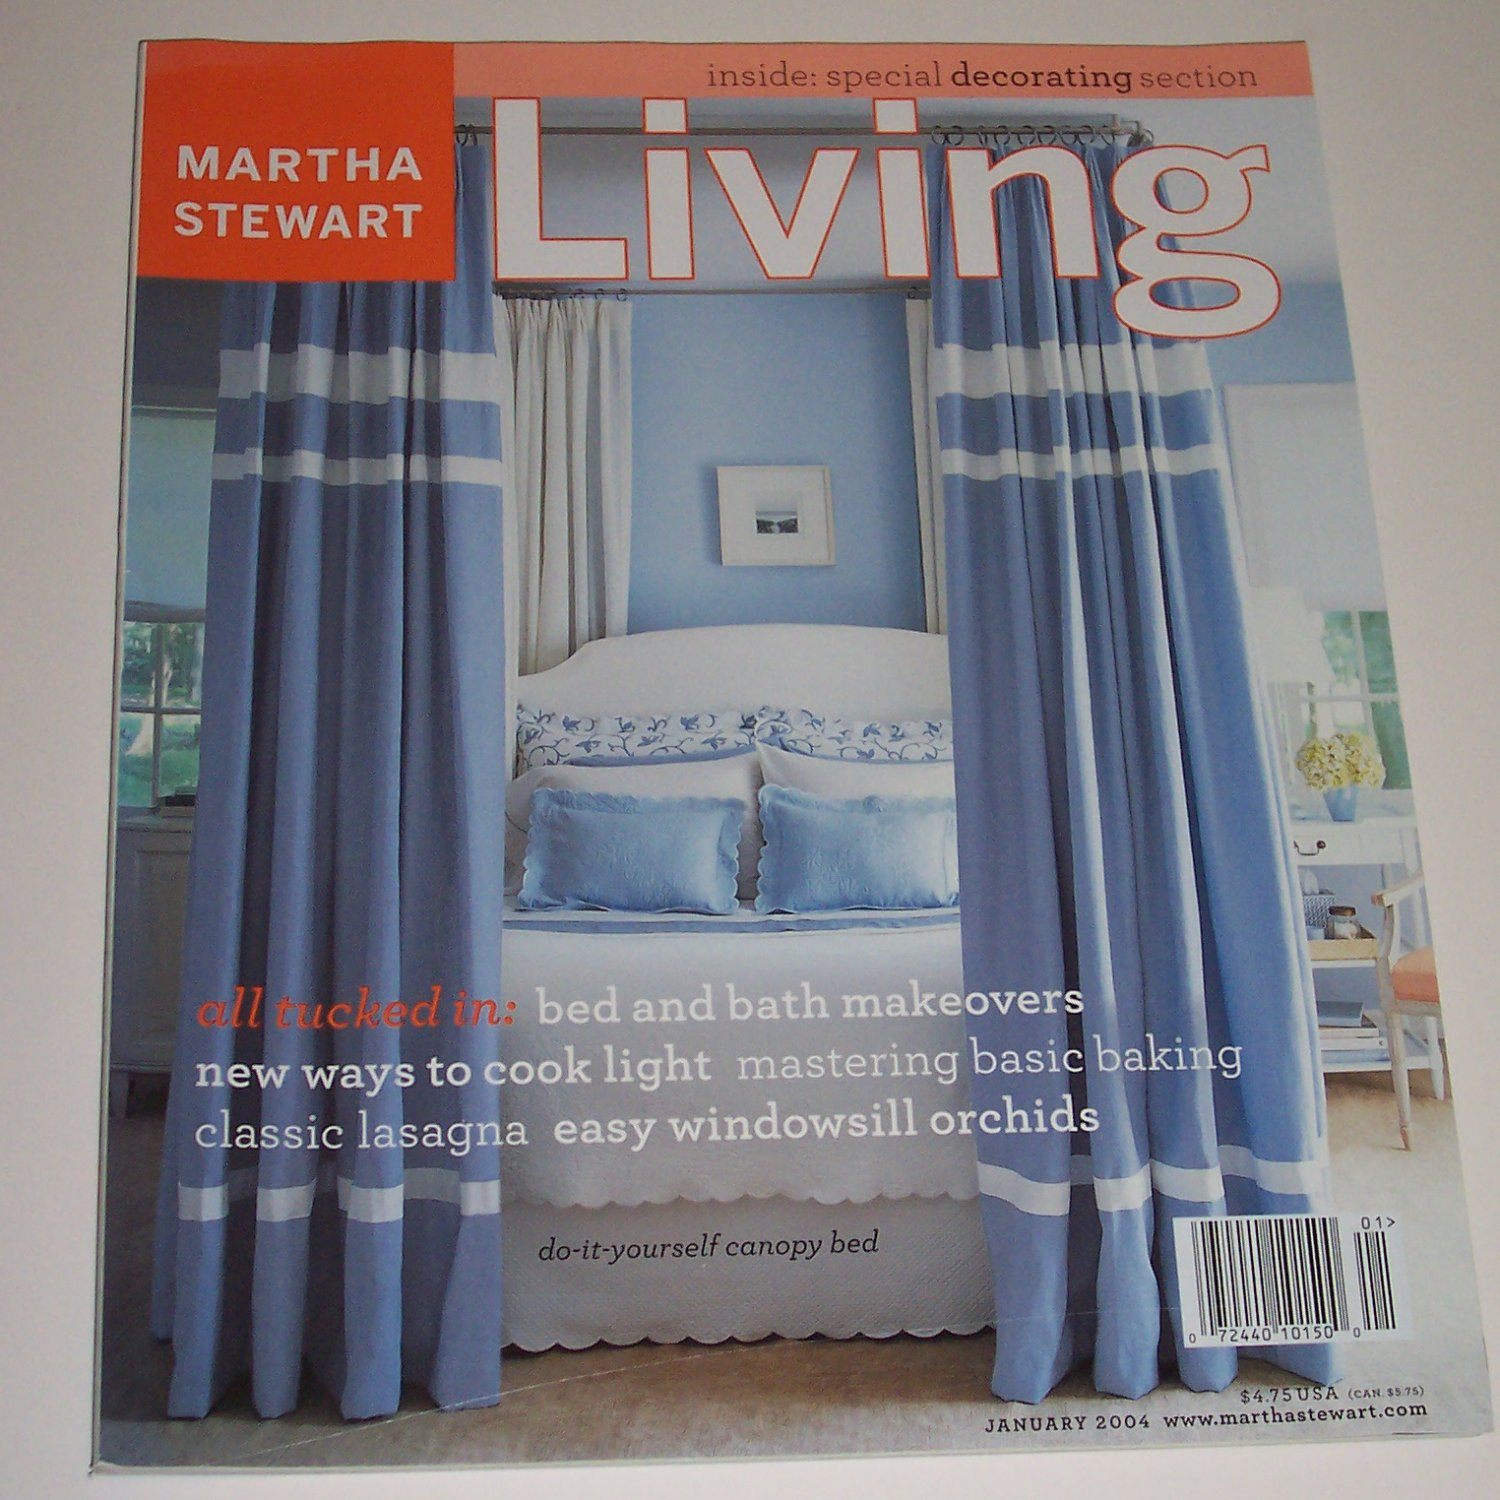 Martha Stewart Living, all tucked in January 2004, Number 122 magazine issue